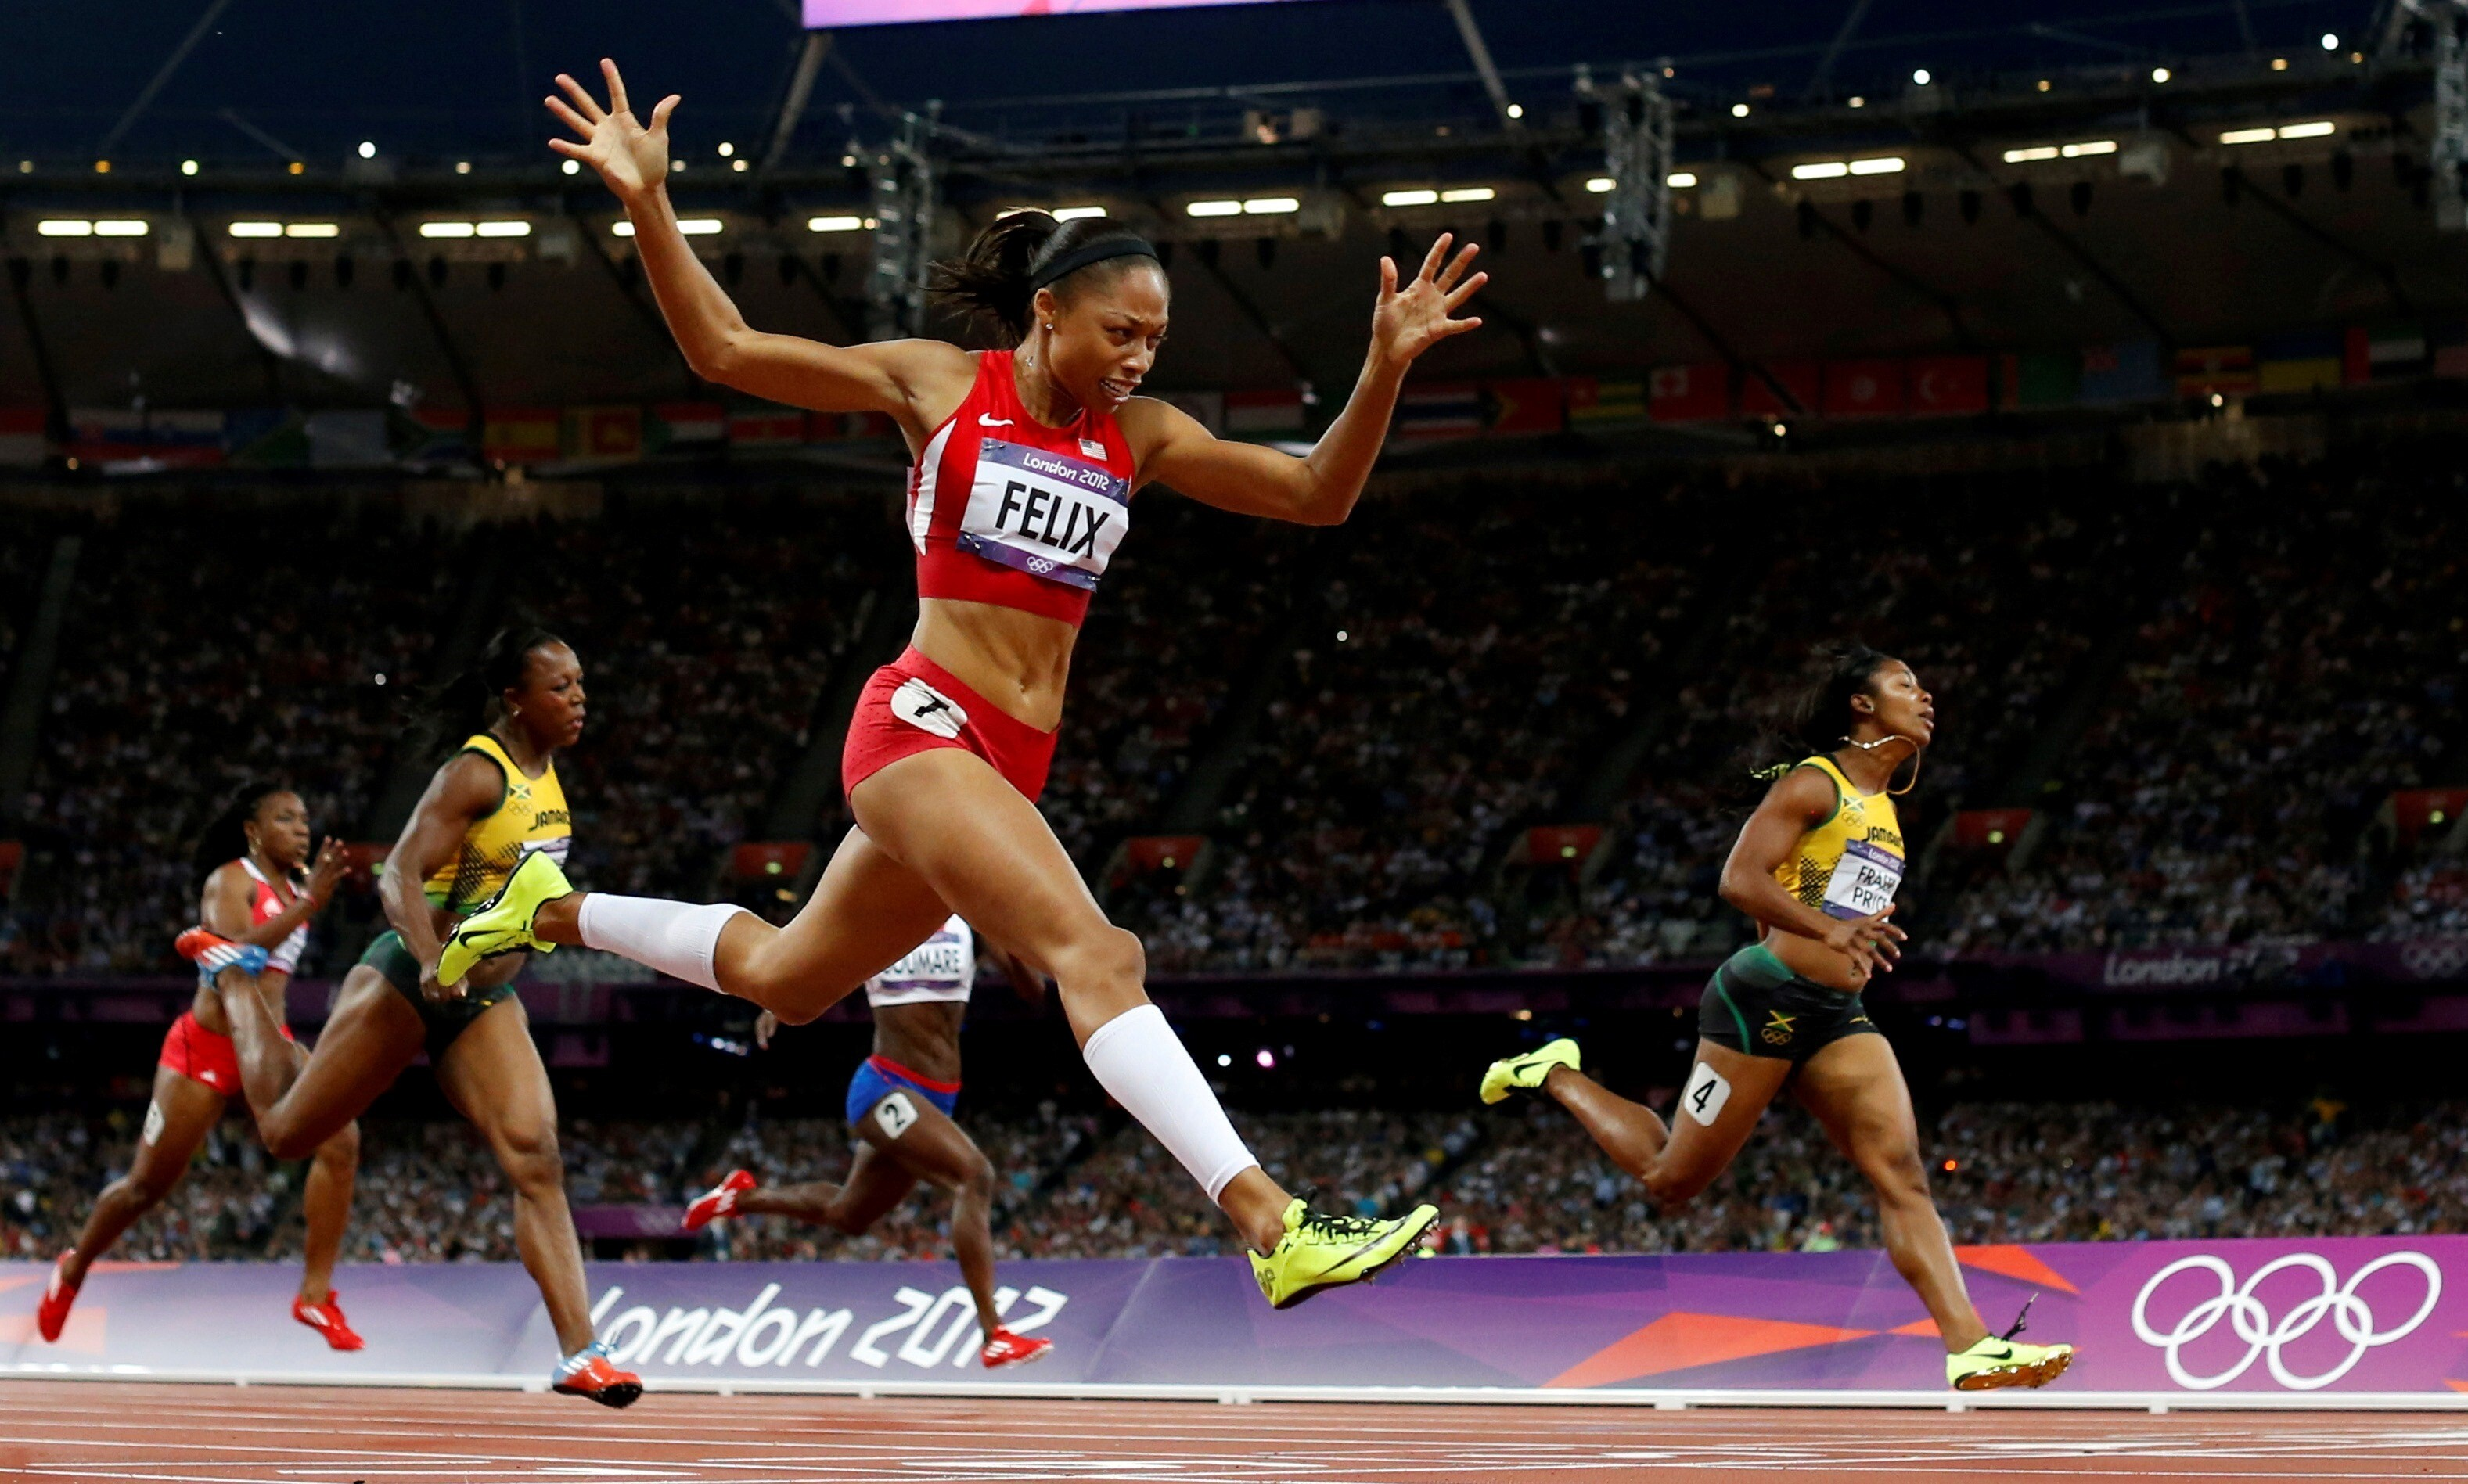 Woman Athletics Of London Olympics Hd Wallpapers